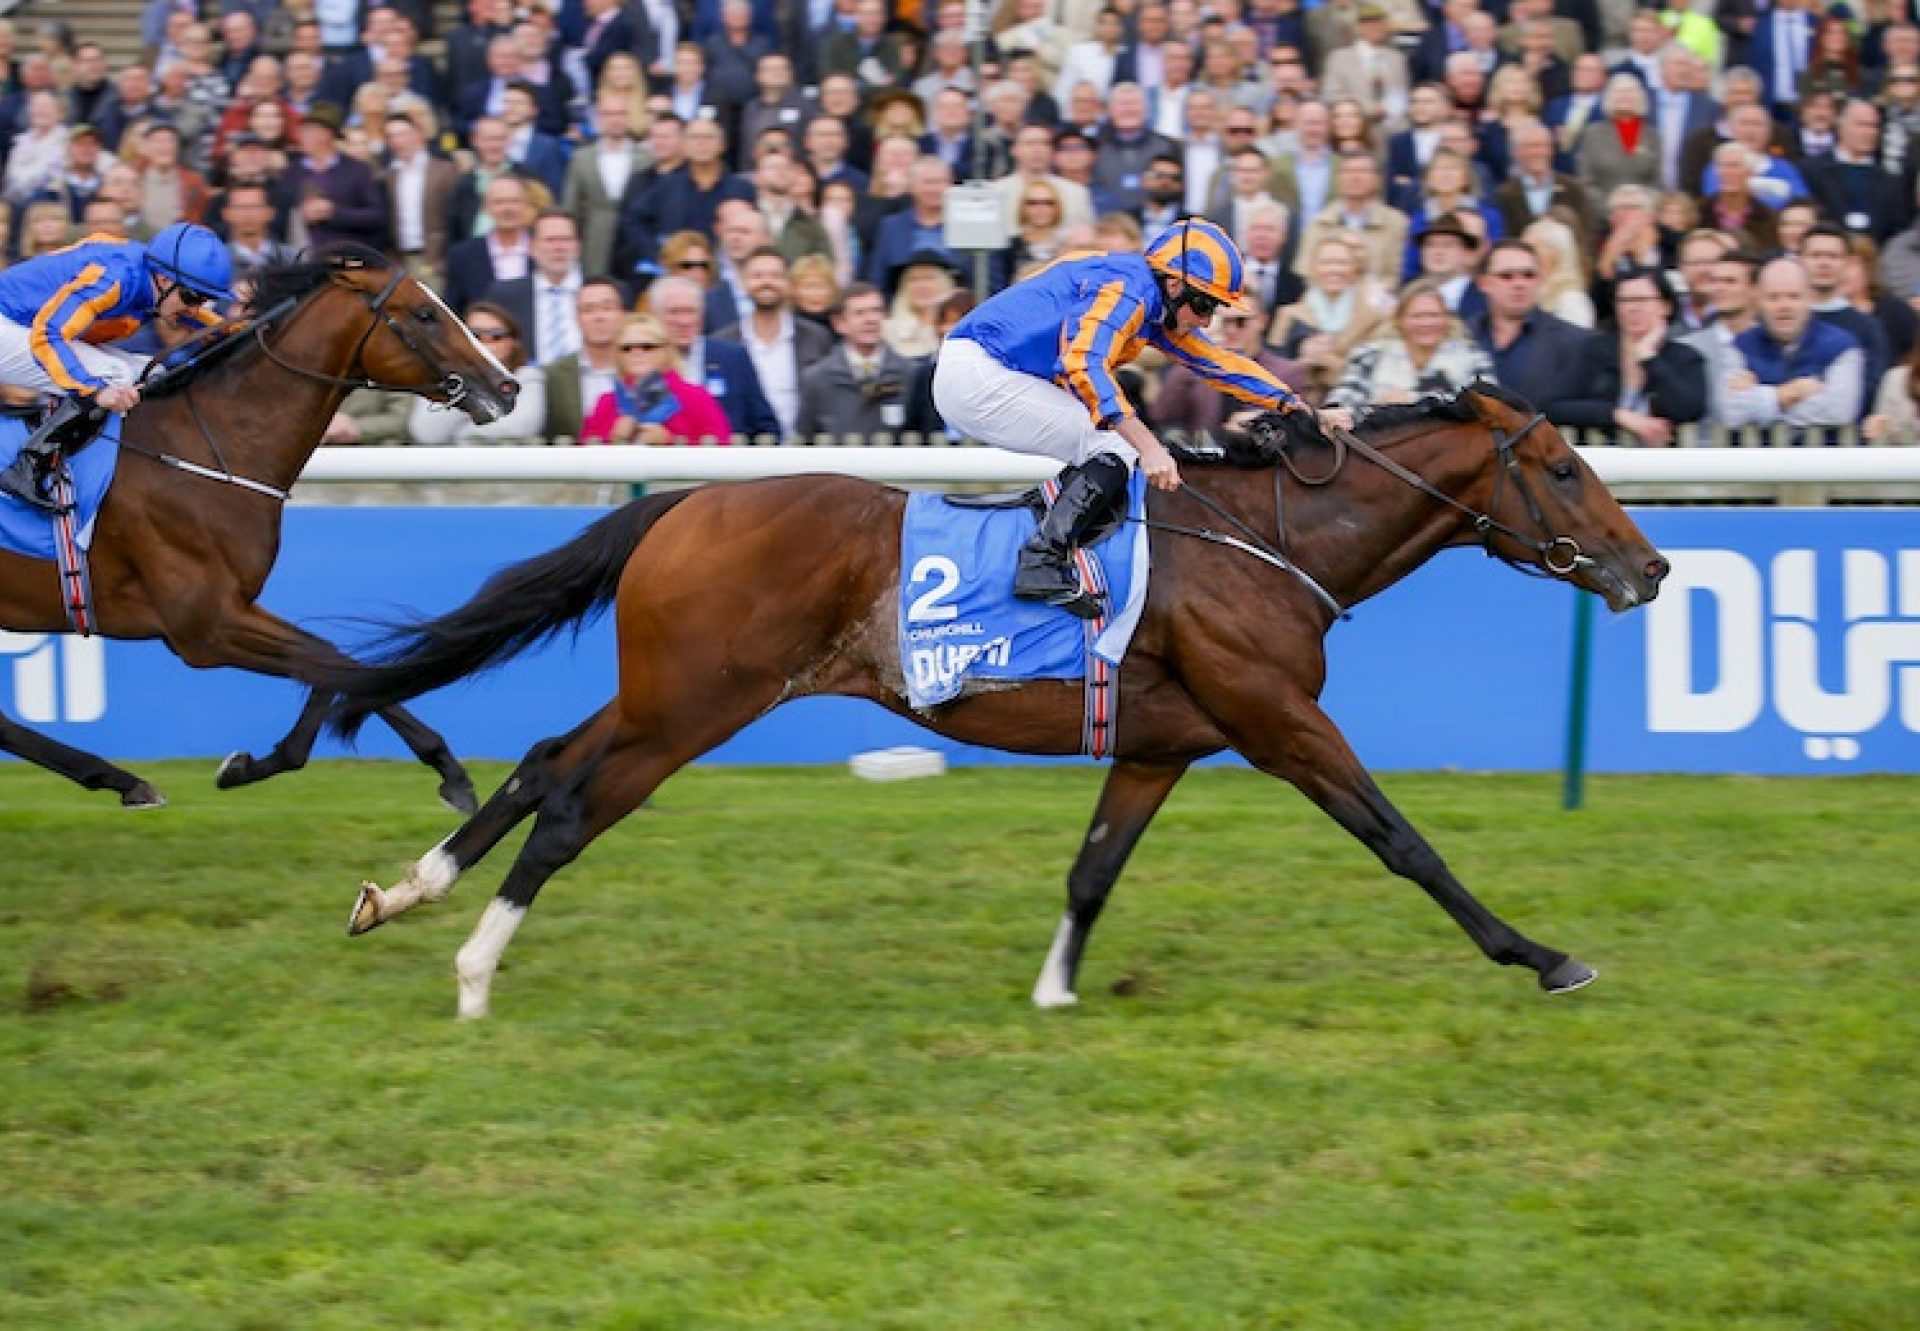 Churchill (Galileo) winning the G1 Dewhurst Stakes at Newmarket